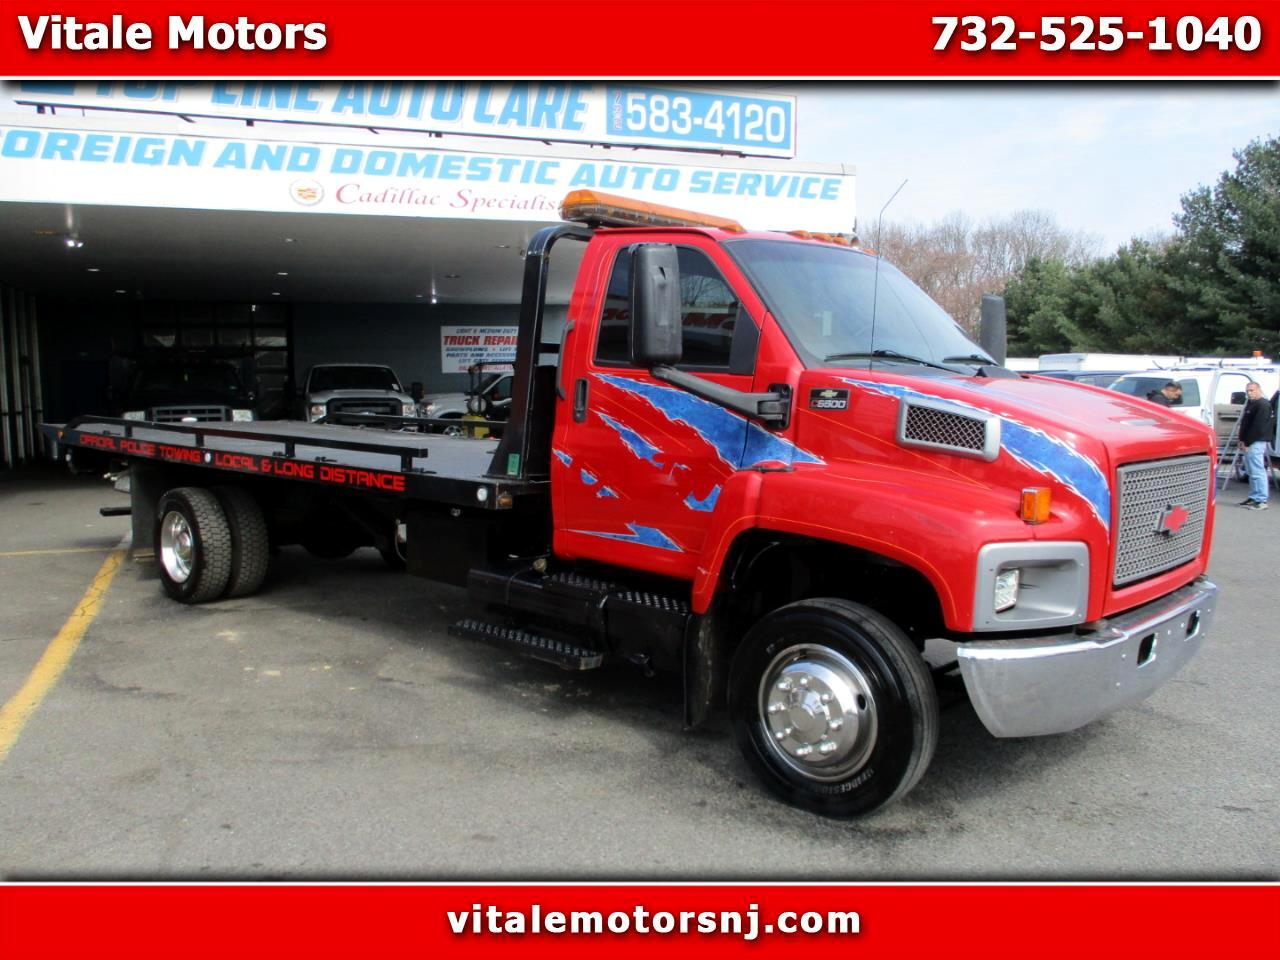 2004 Chevrolet C6500 21 FOOT JERR DAN FLAT BED / ROLL BACK